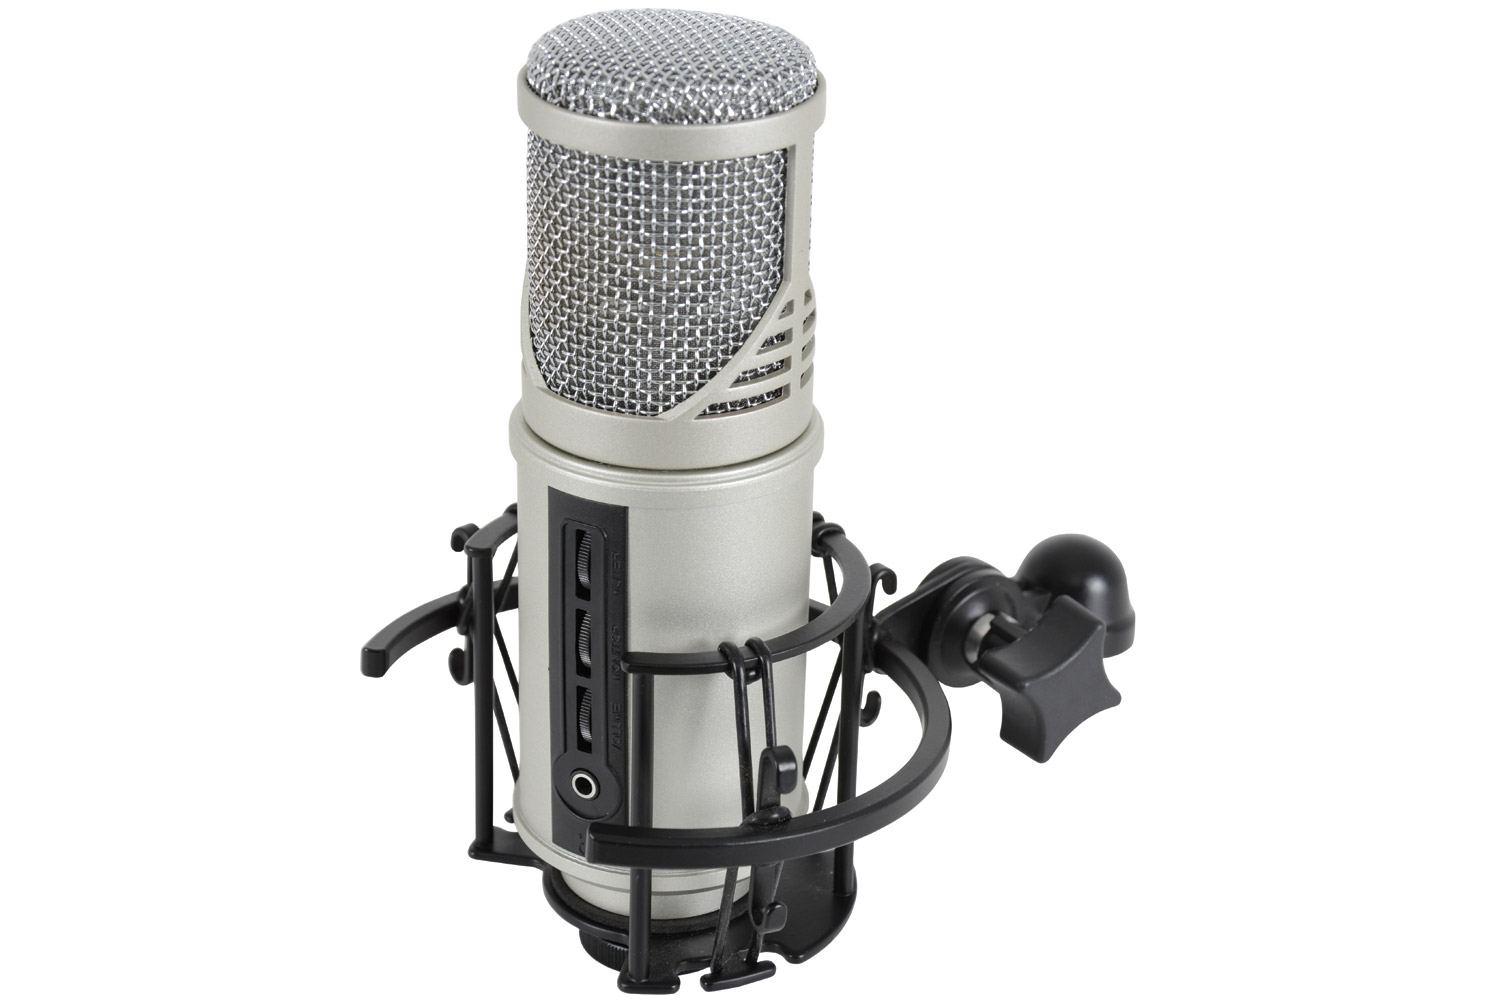 CU-MIC studio microphone with USB audio interface